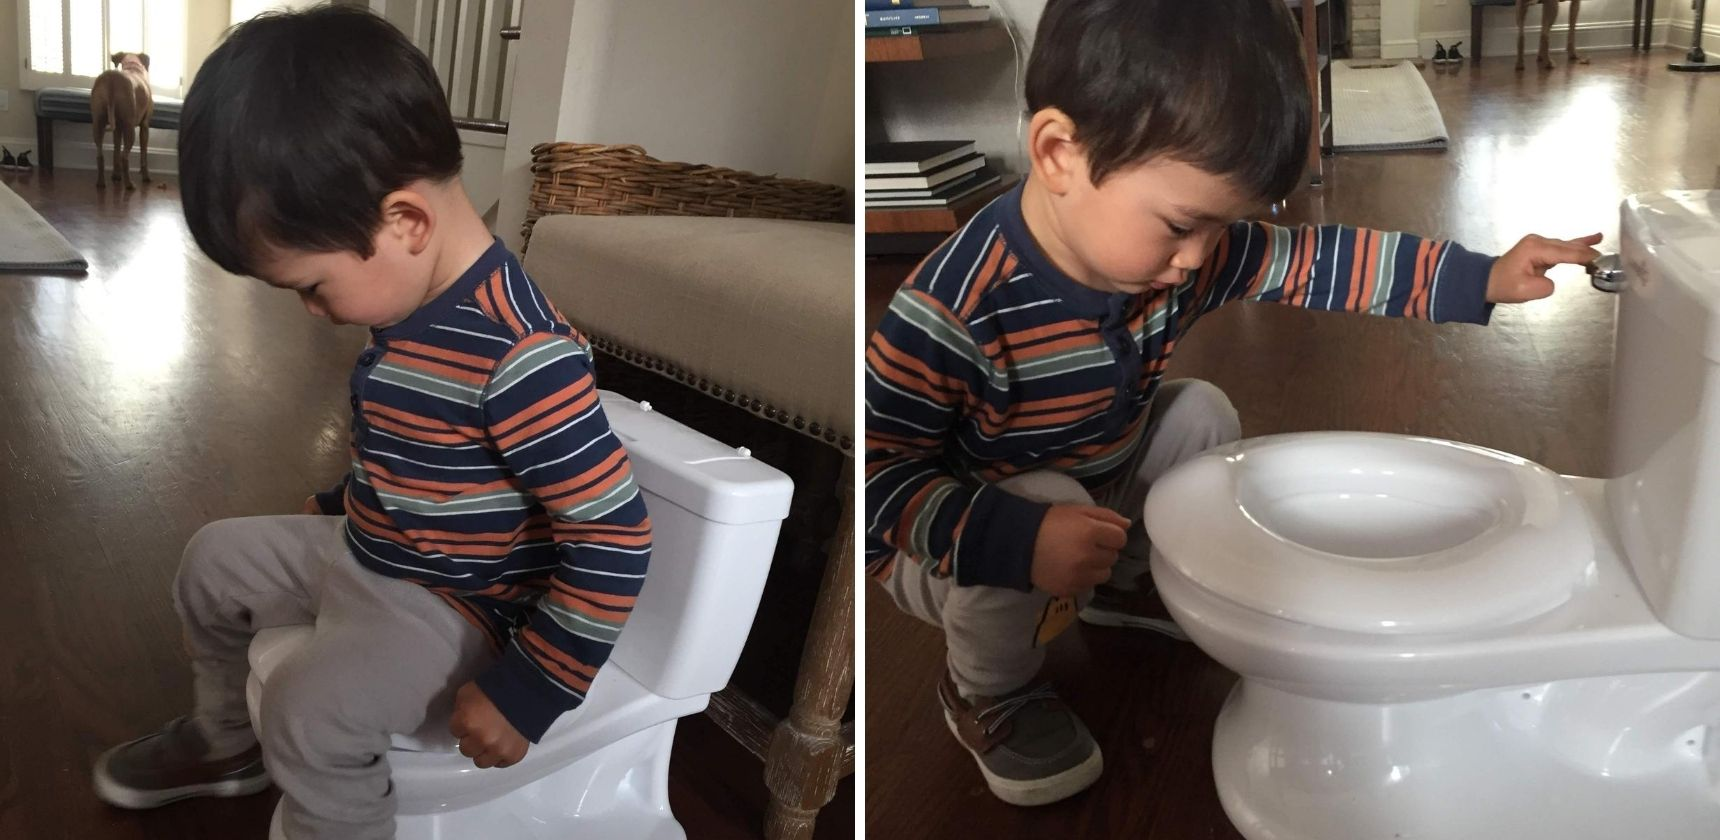 Boy Inspecting Potty Chair